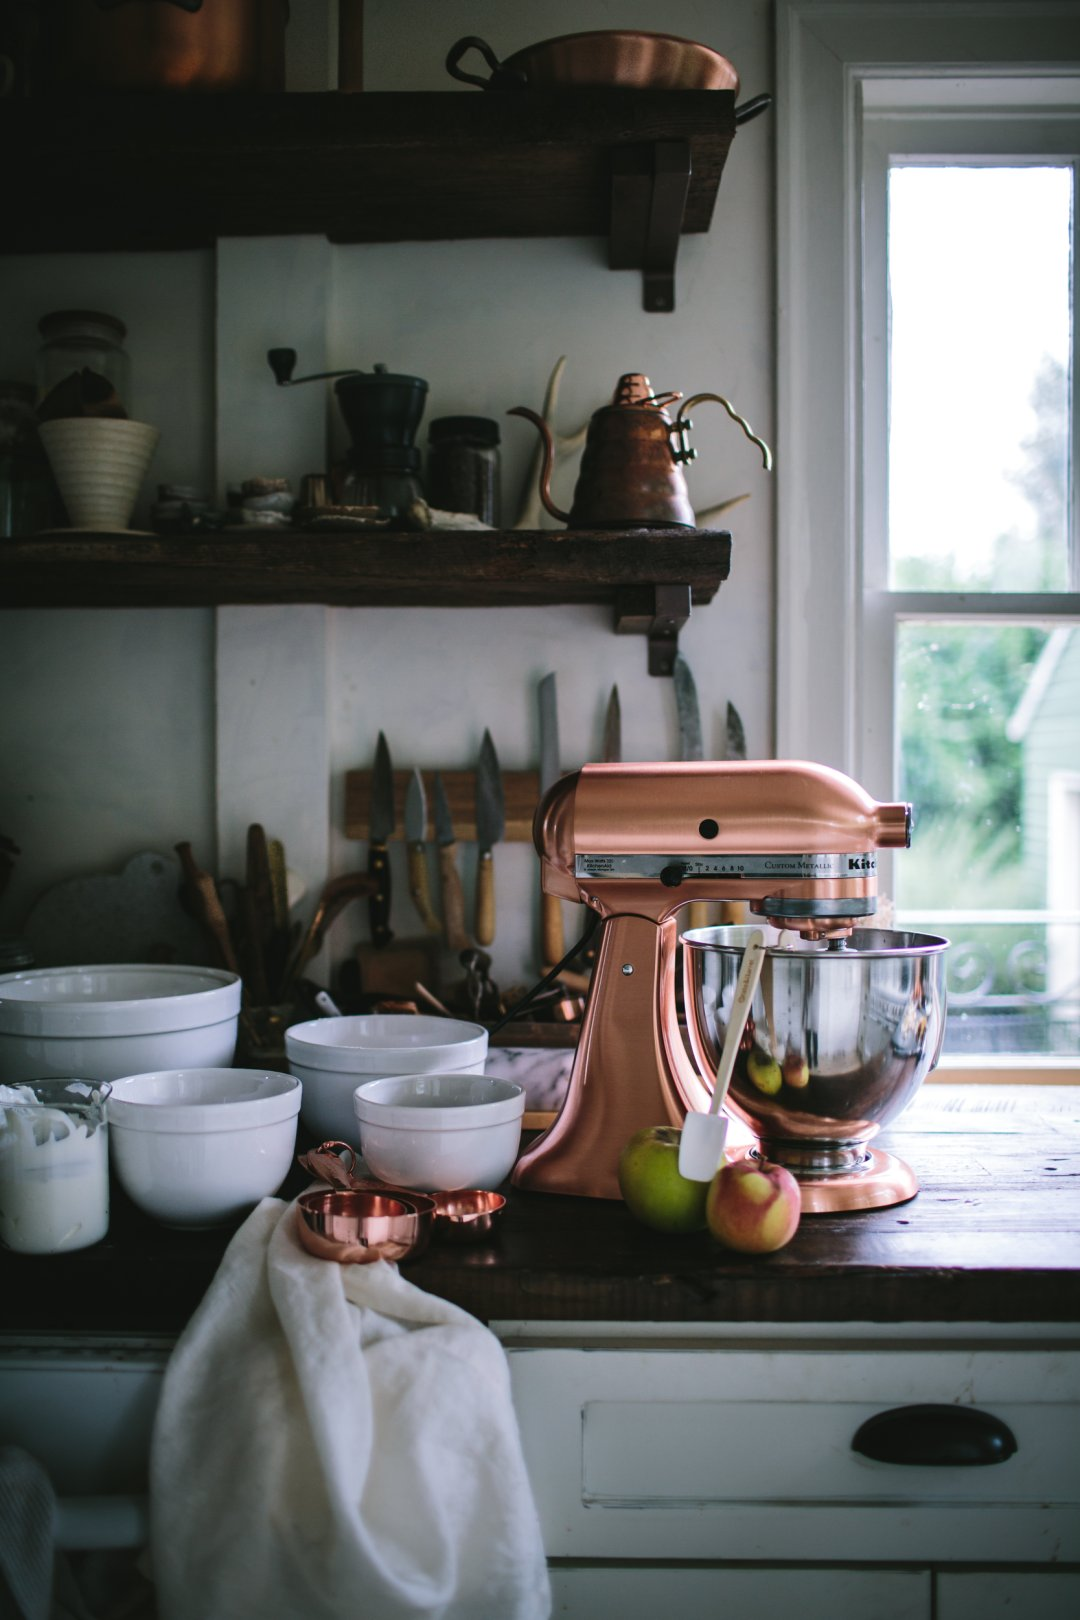 Copper KitchenAid stand mixer surrounded by mixing bowls, measuring cups and other prep ingredients